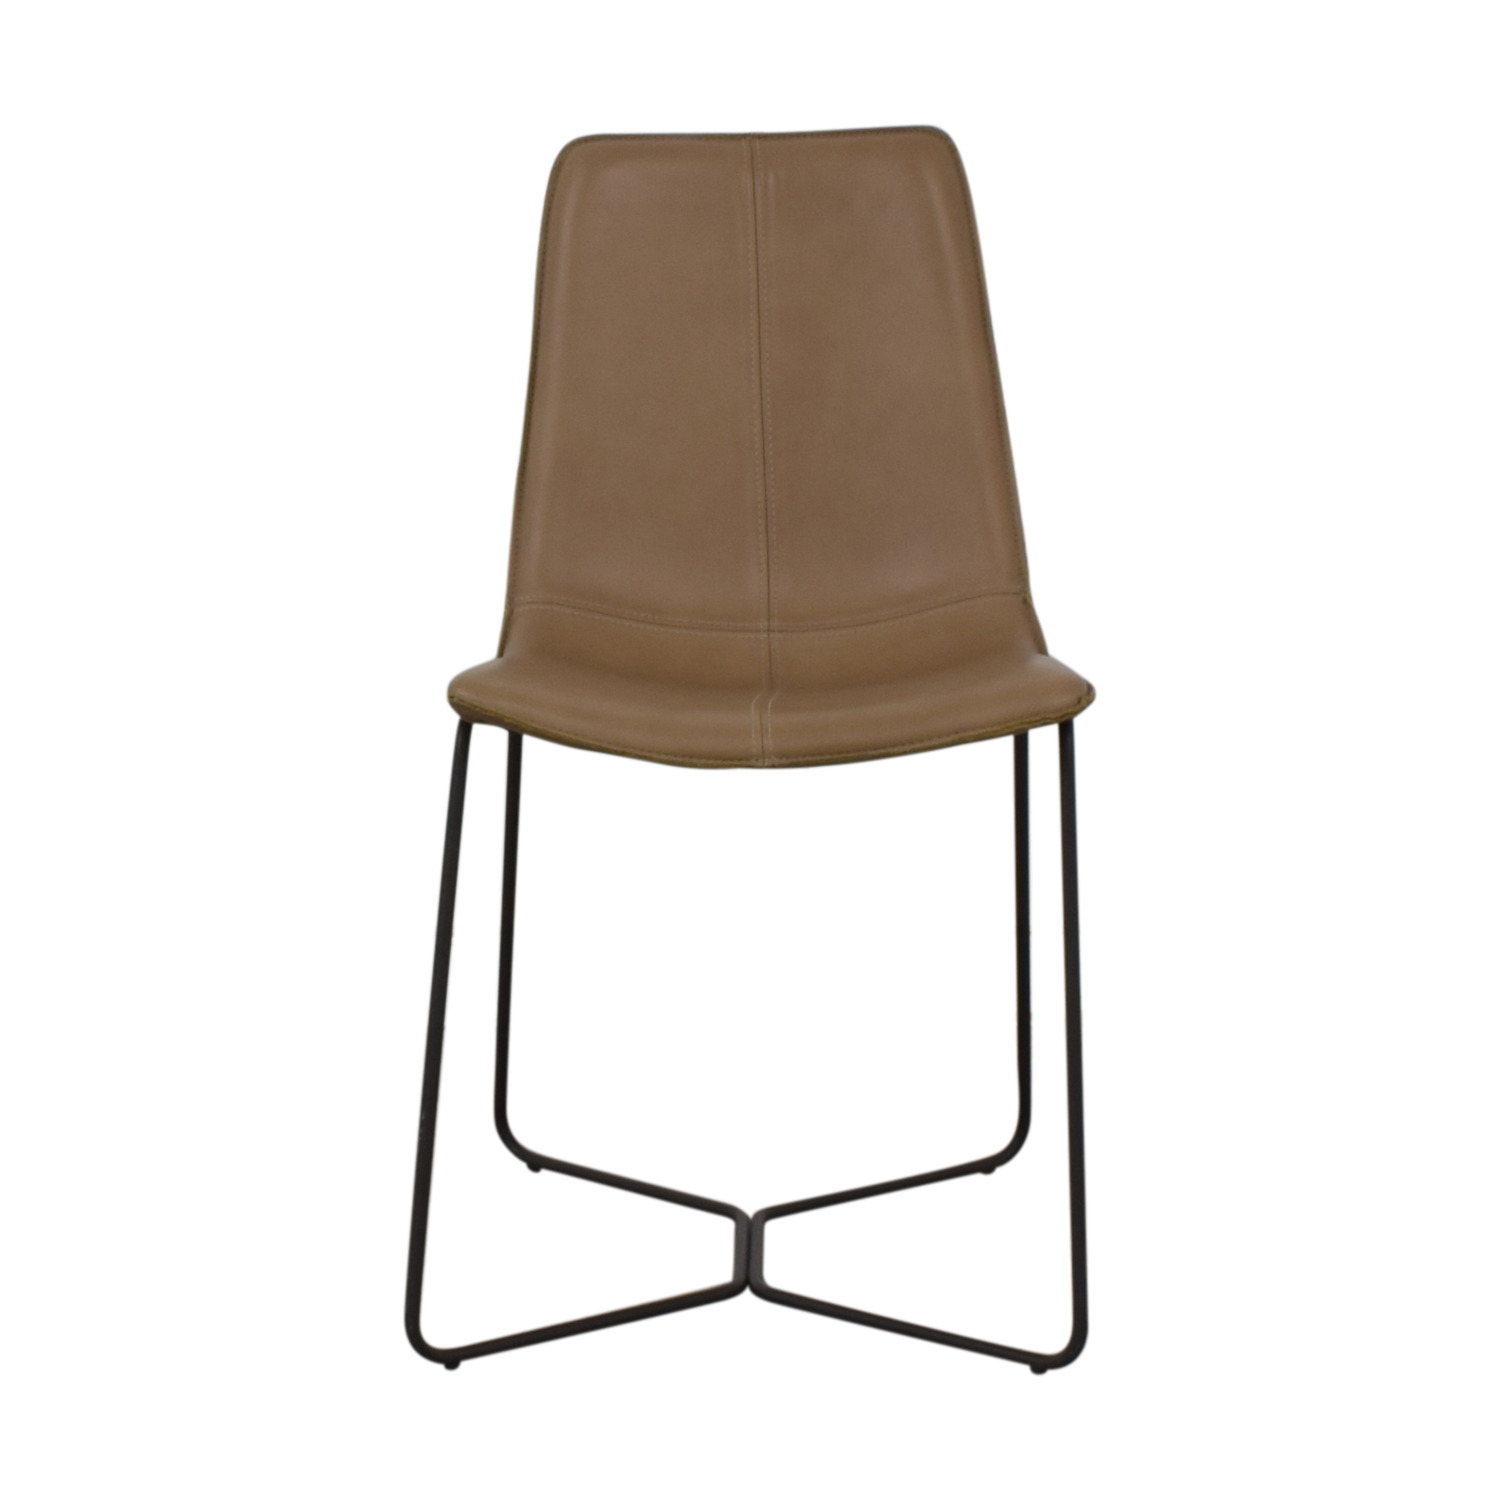 West Elm West Elm Leather Slope Dining Chair coupon